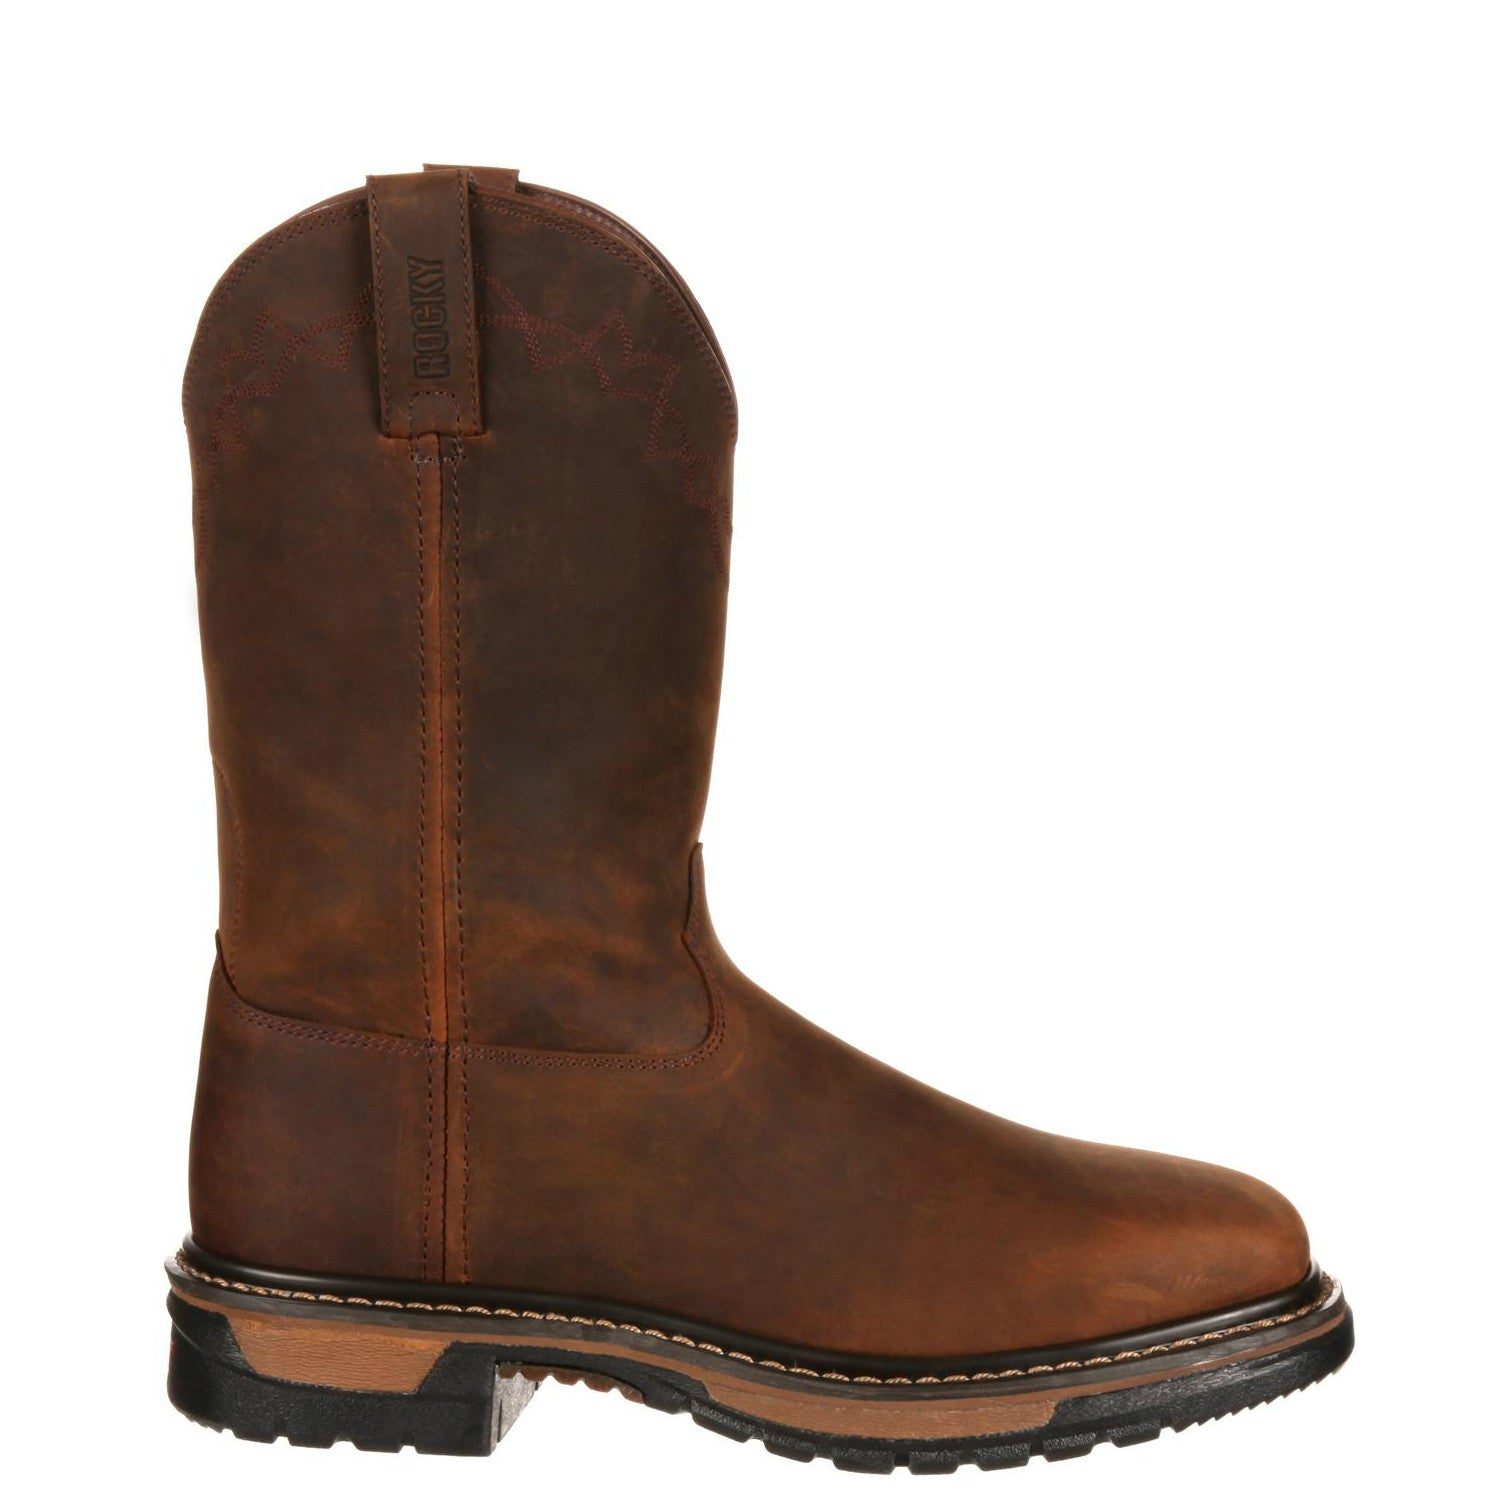 680dde0d0a7 Rocky Men's Original Ride Steel Toe Western Boot - Dark Brown RKW0117